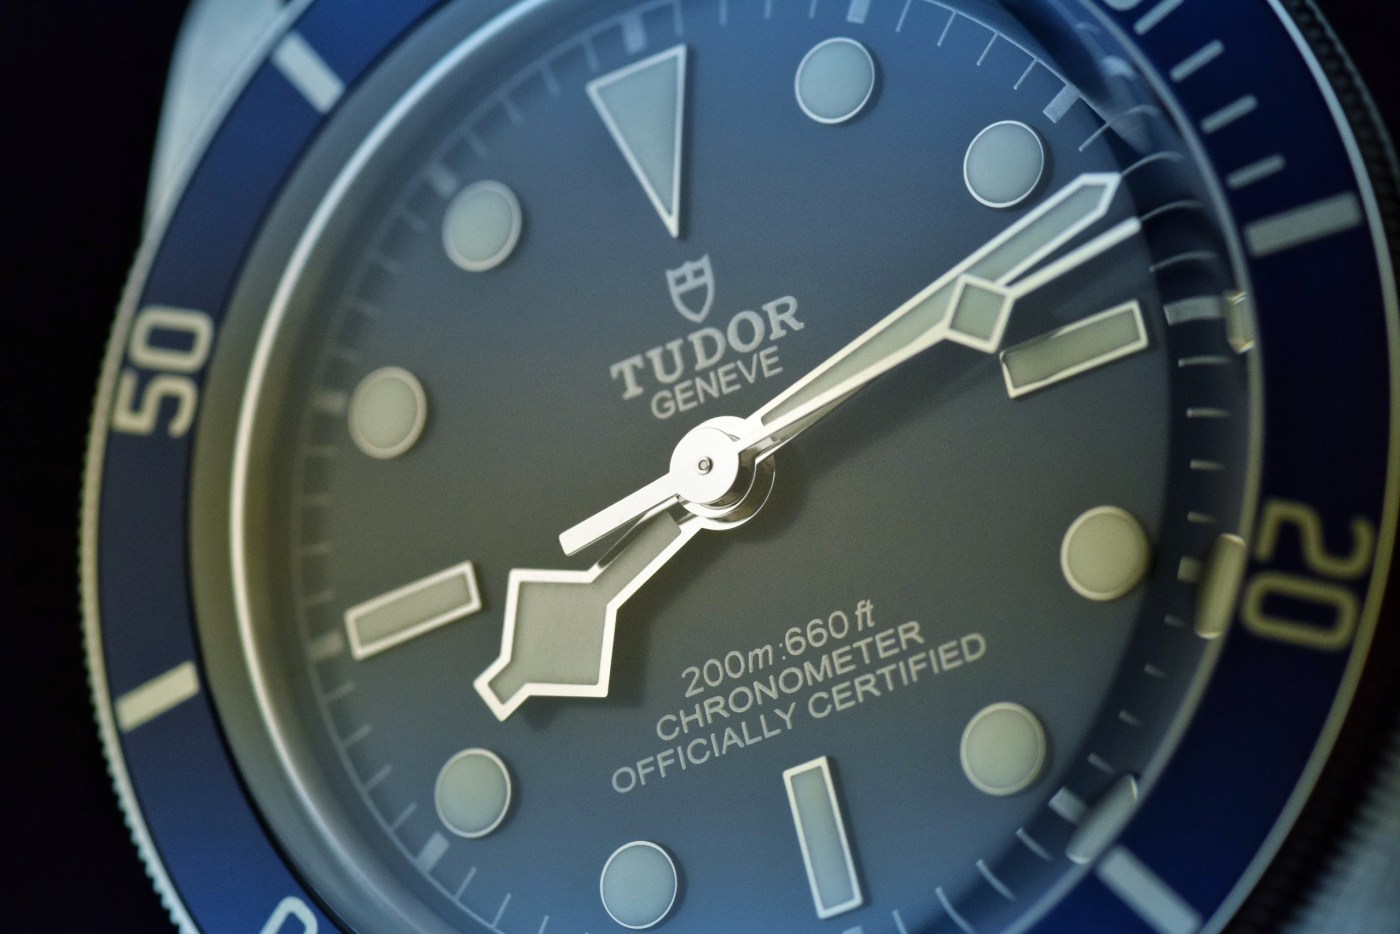 Tudor Black Bay Fifty-Eight Navy Blue Ref. 79030B-0003